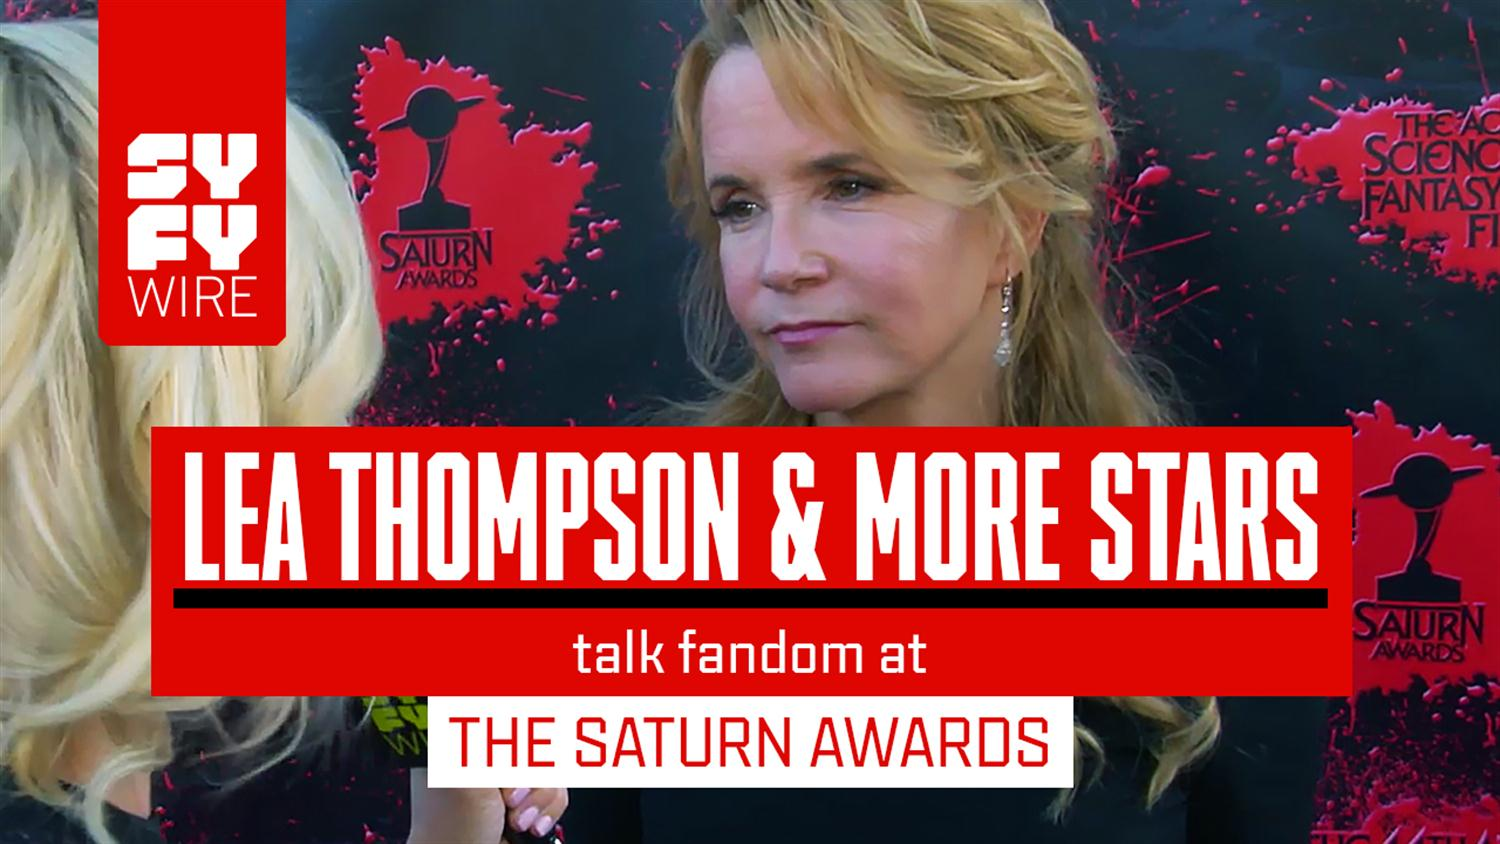 Lea Thompson, Lindsey Morgan & Other Stars Talk about Scifi & Horror Fans at the Saturn Awards